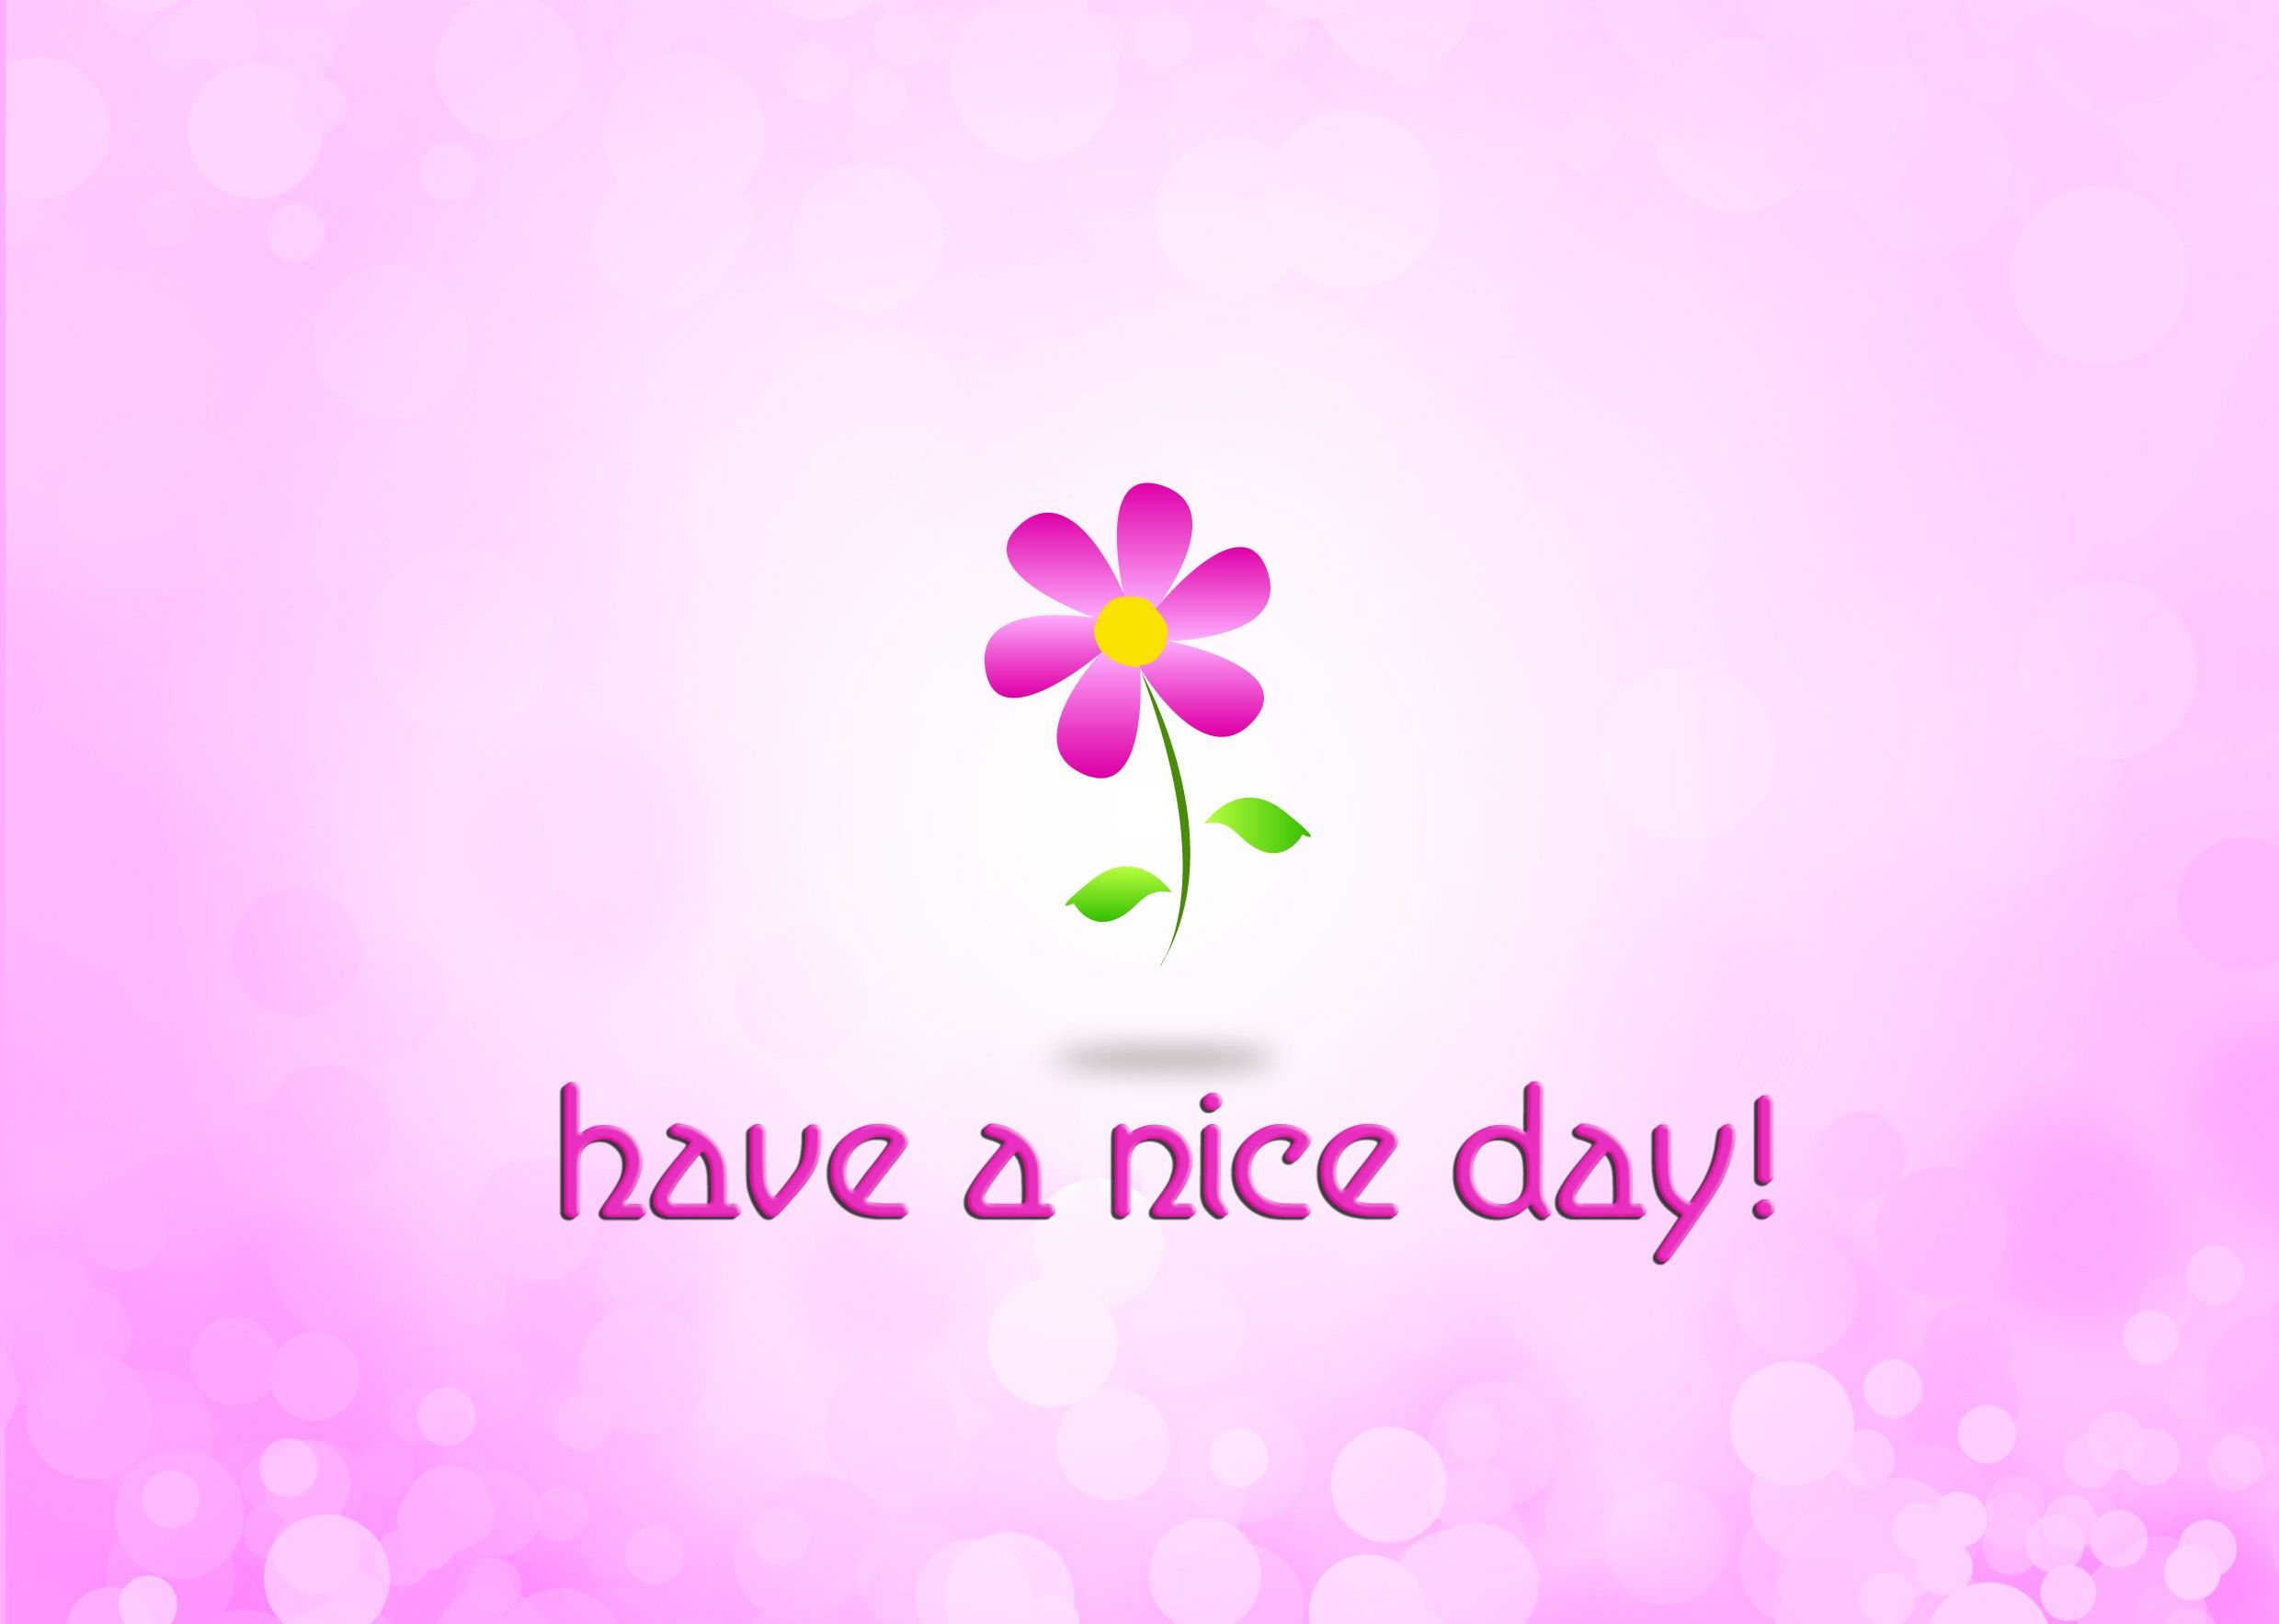 have a good day | Good morning beautiful quotes, Good morning images hd, Good day wishes